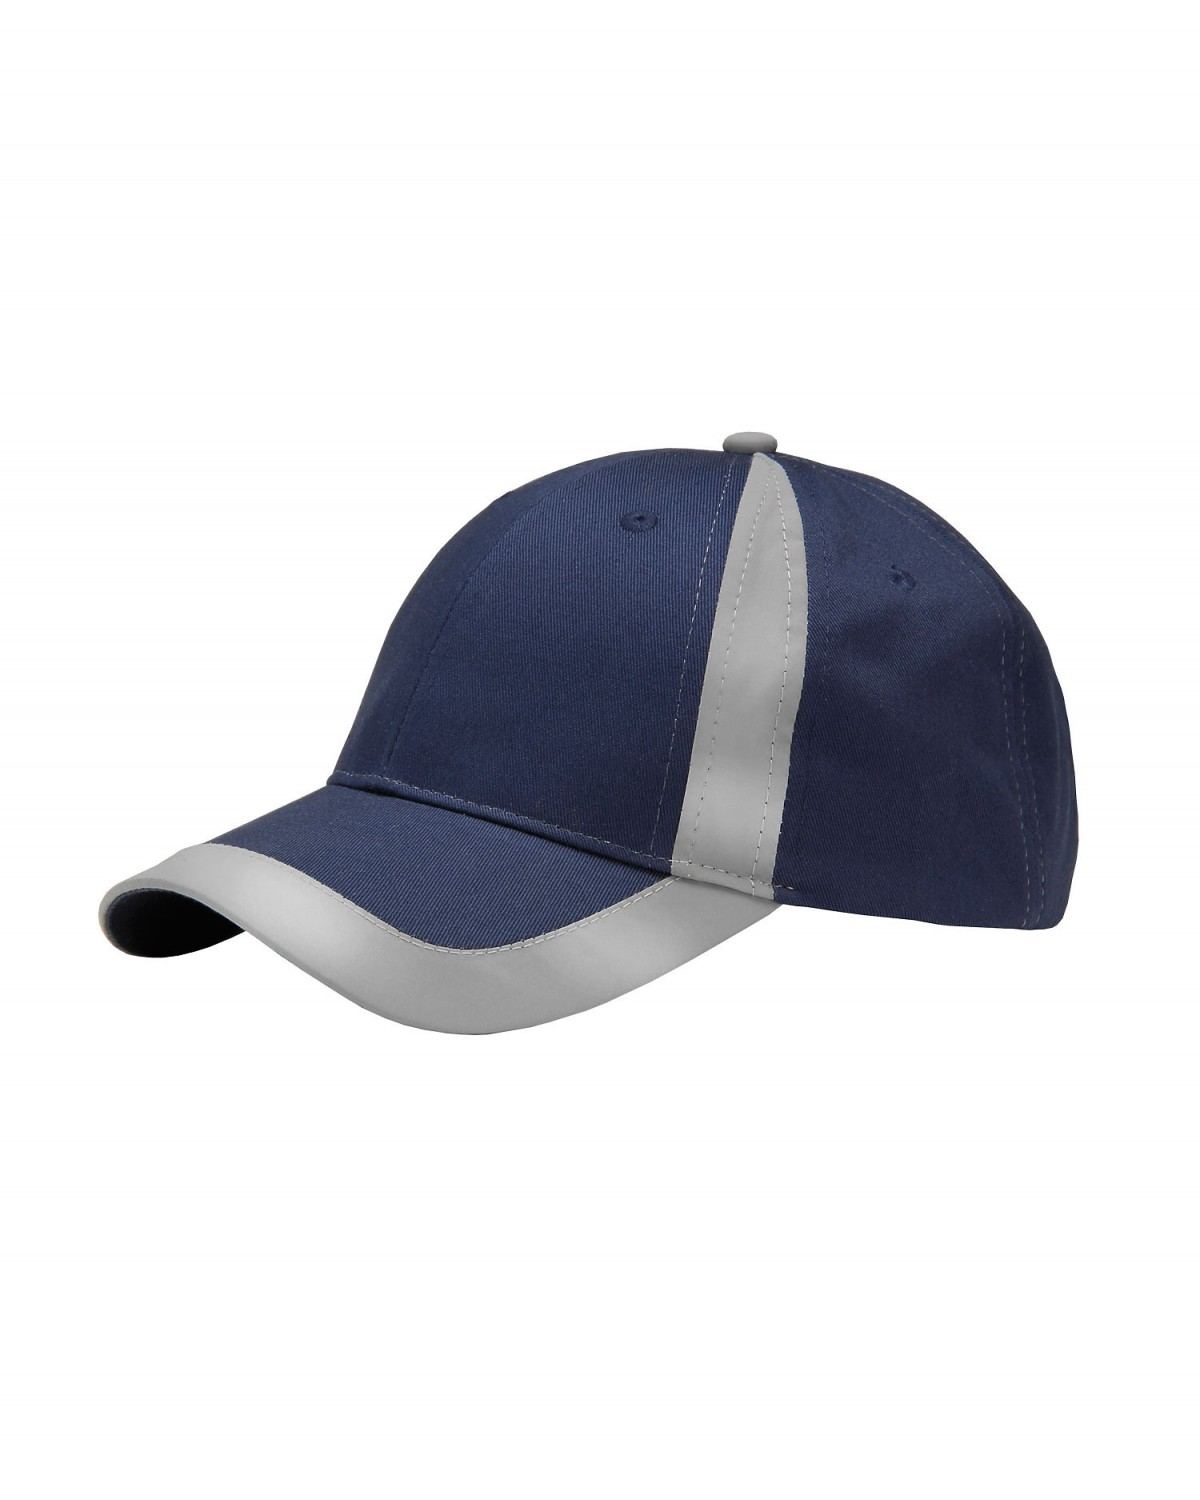 BG4119 Badger Sport NAVY